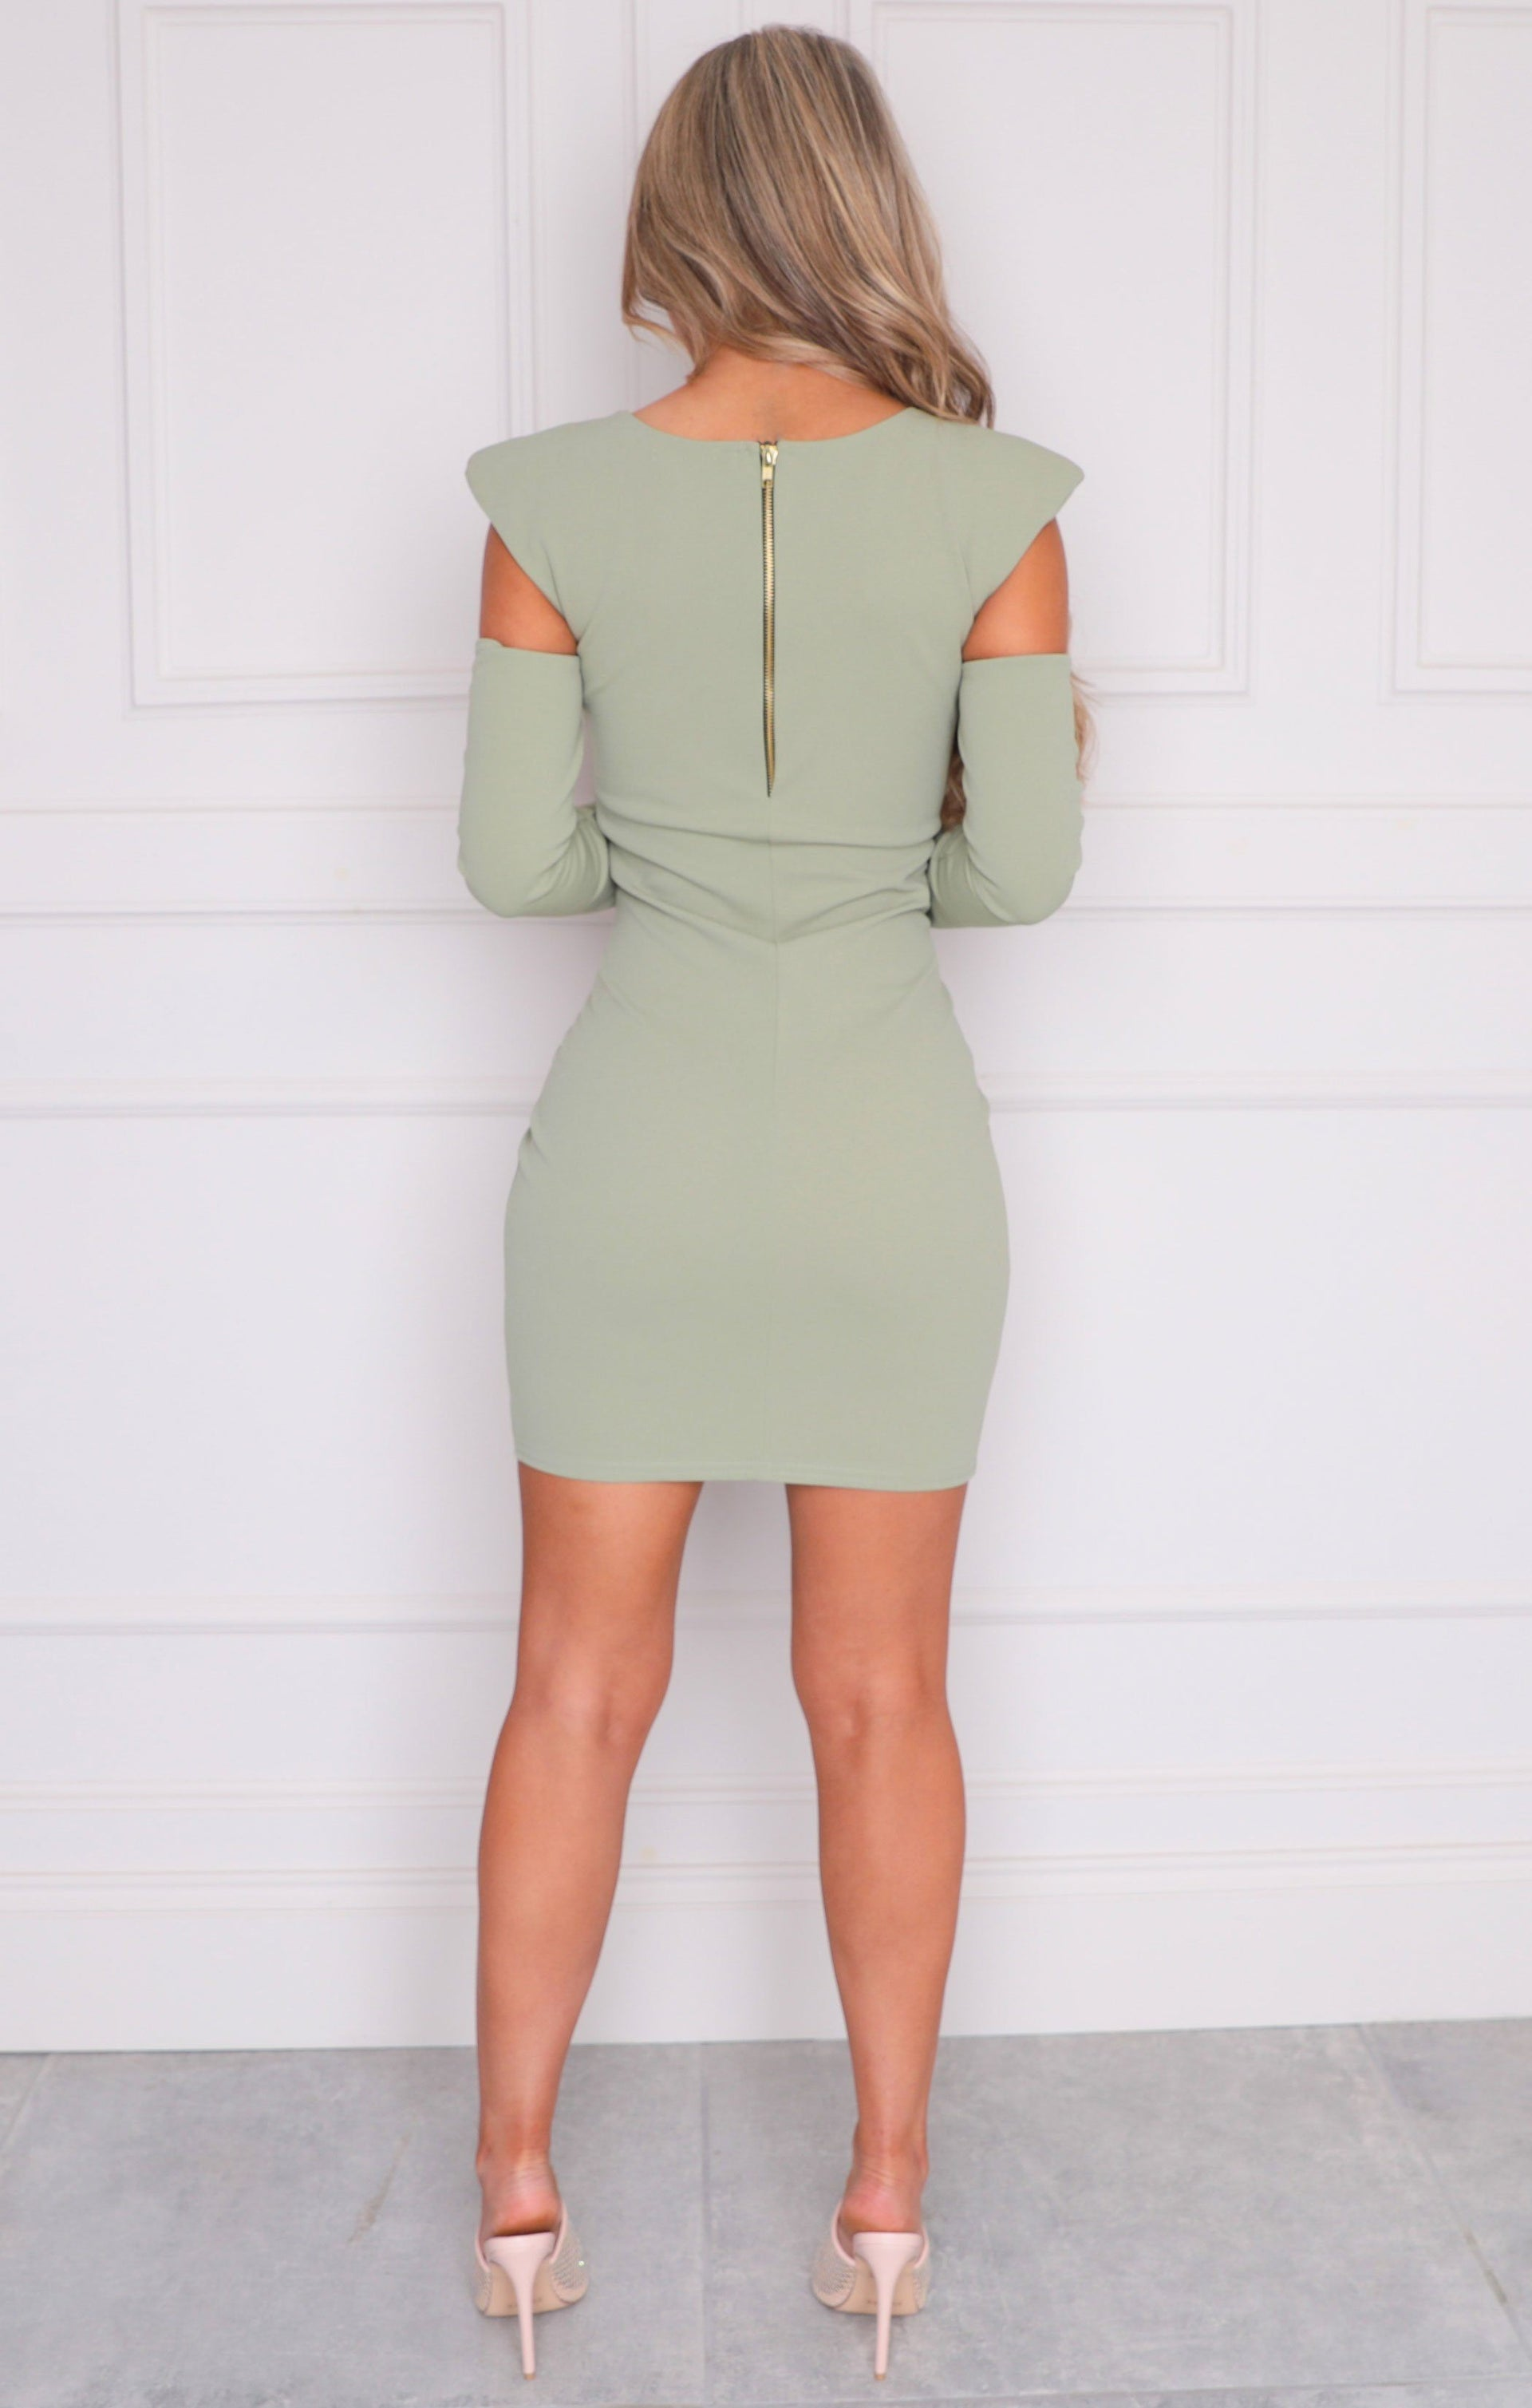 Sage Cut Out Shoulder Pads Bodycon Mini Dress - Colette